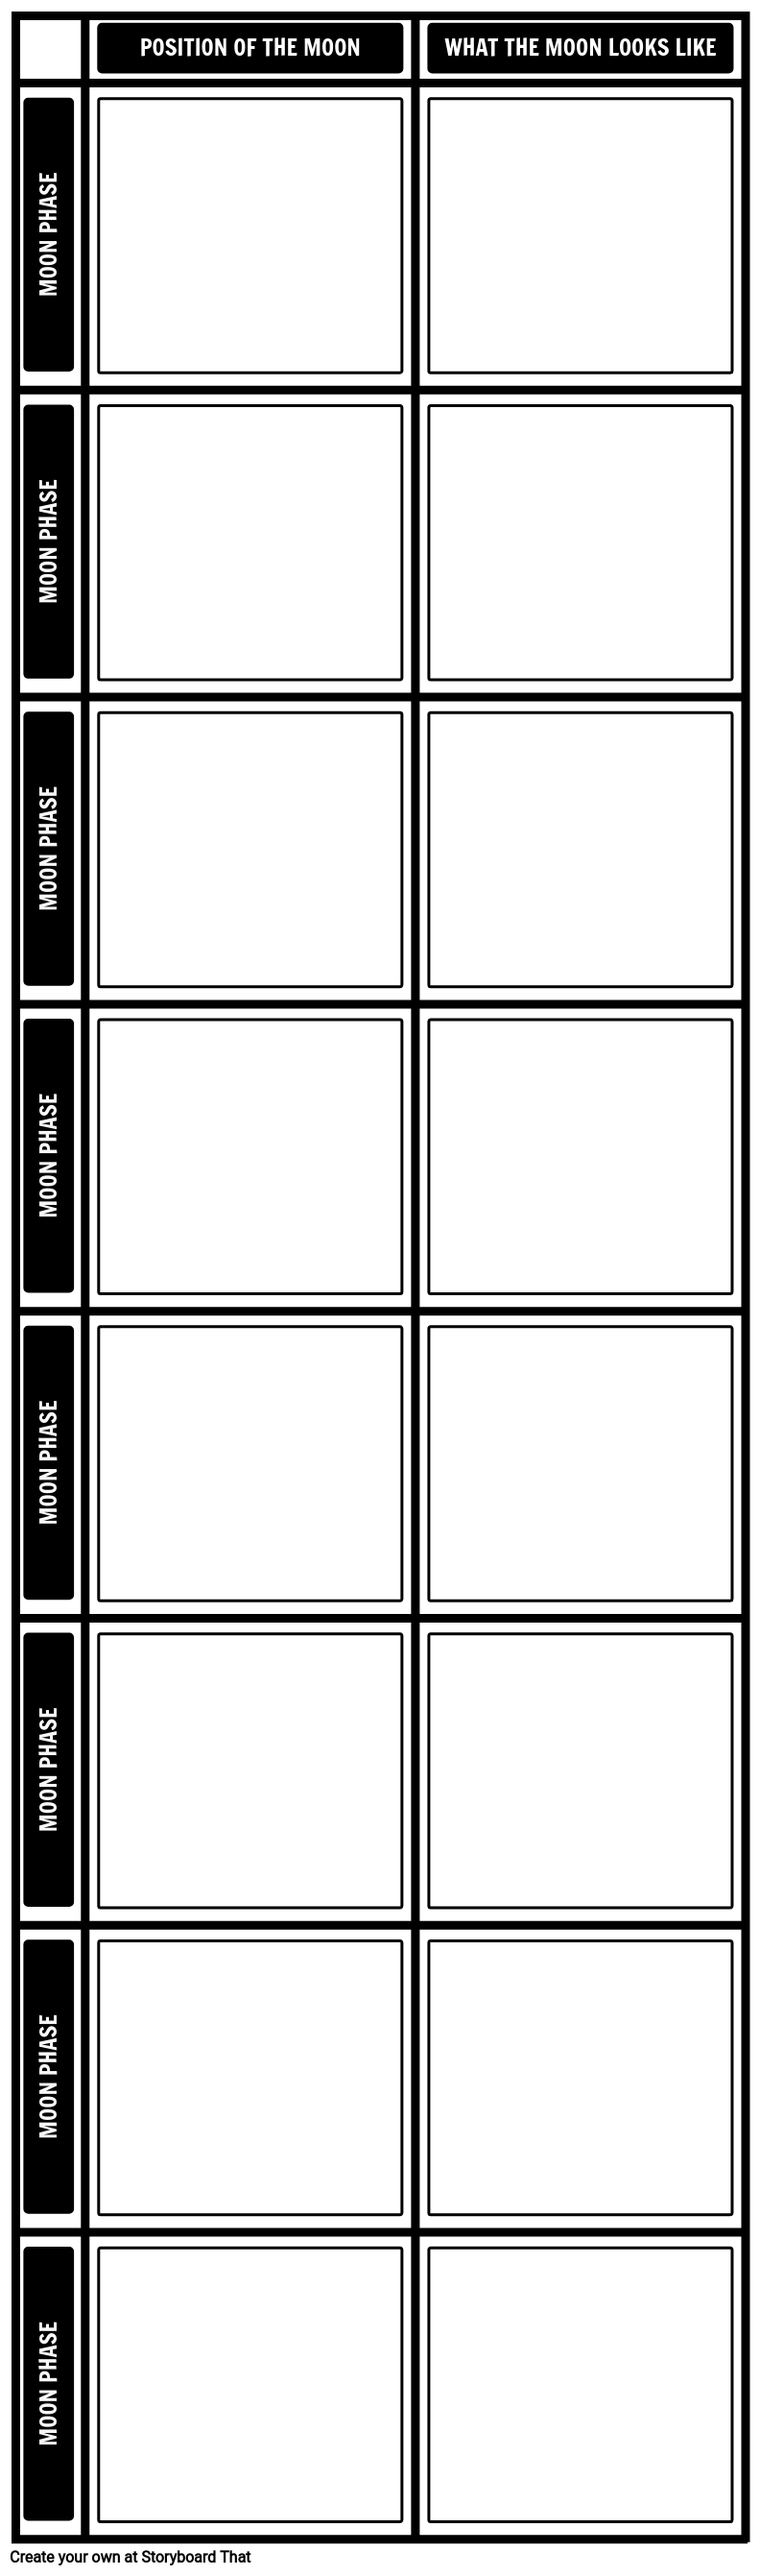 Phases of the Moon Template